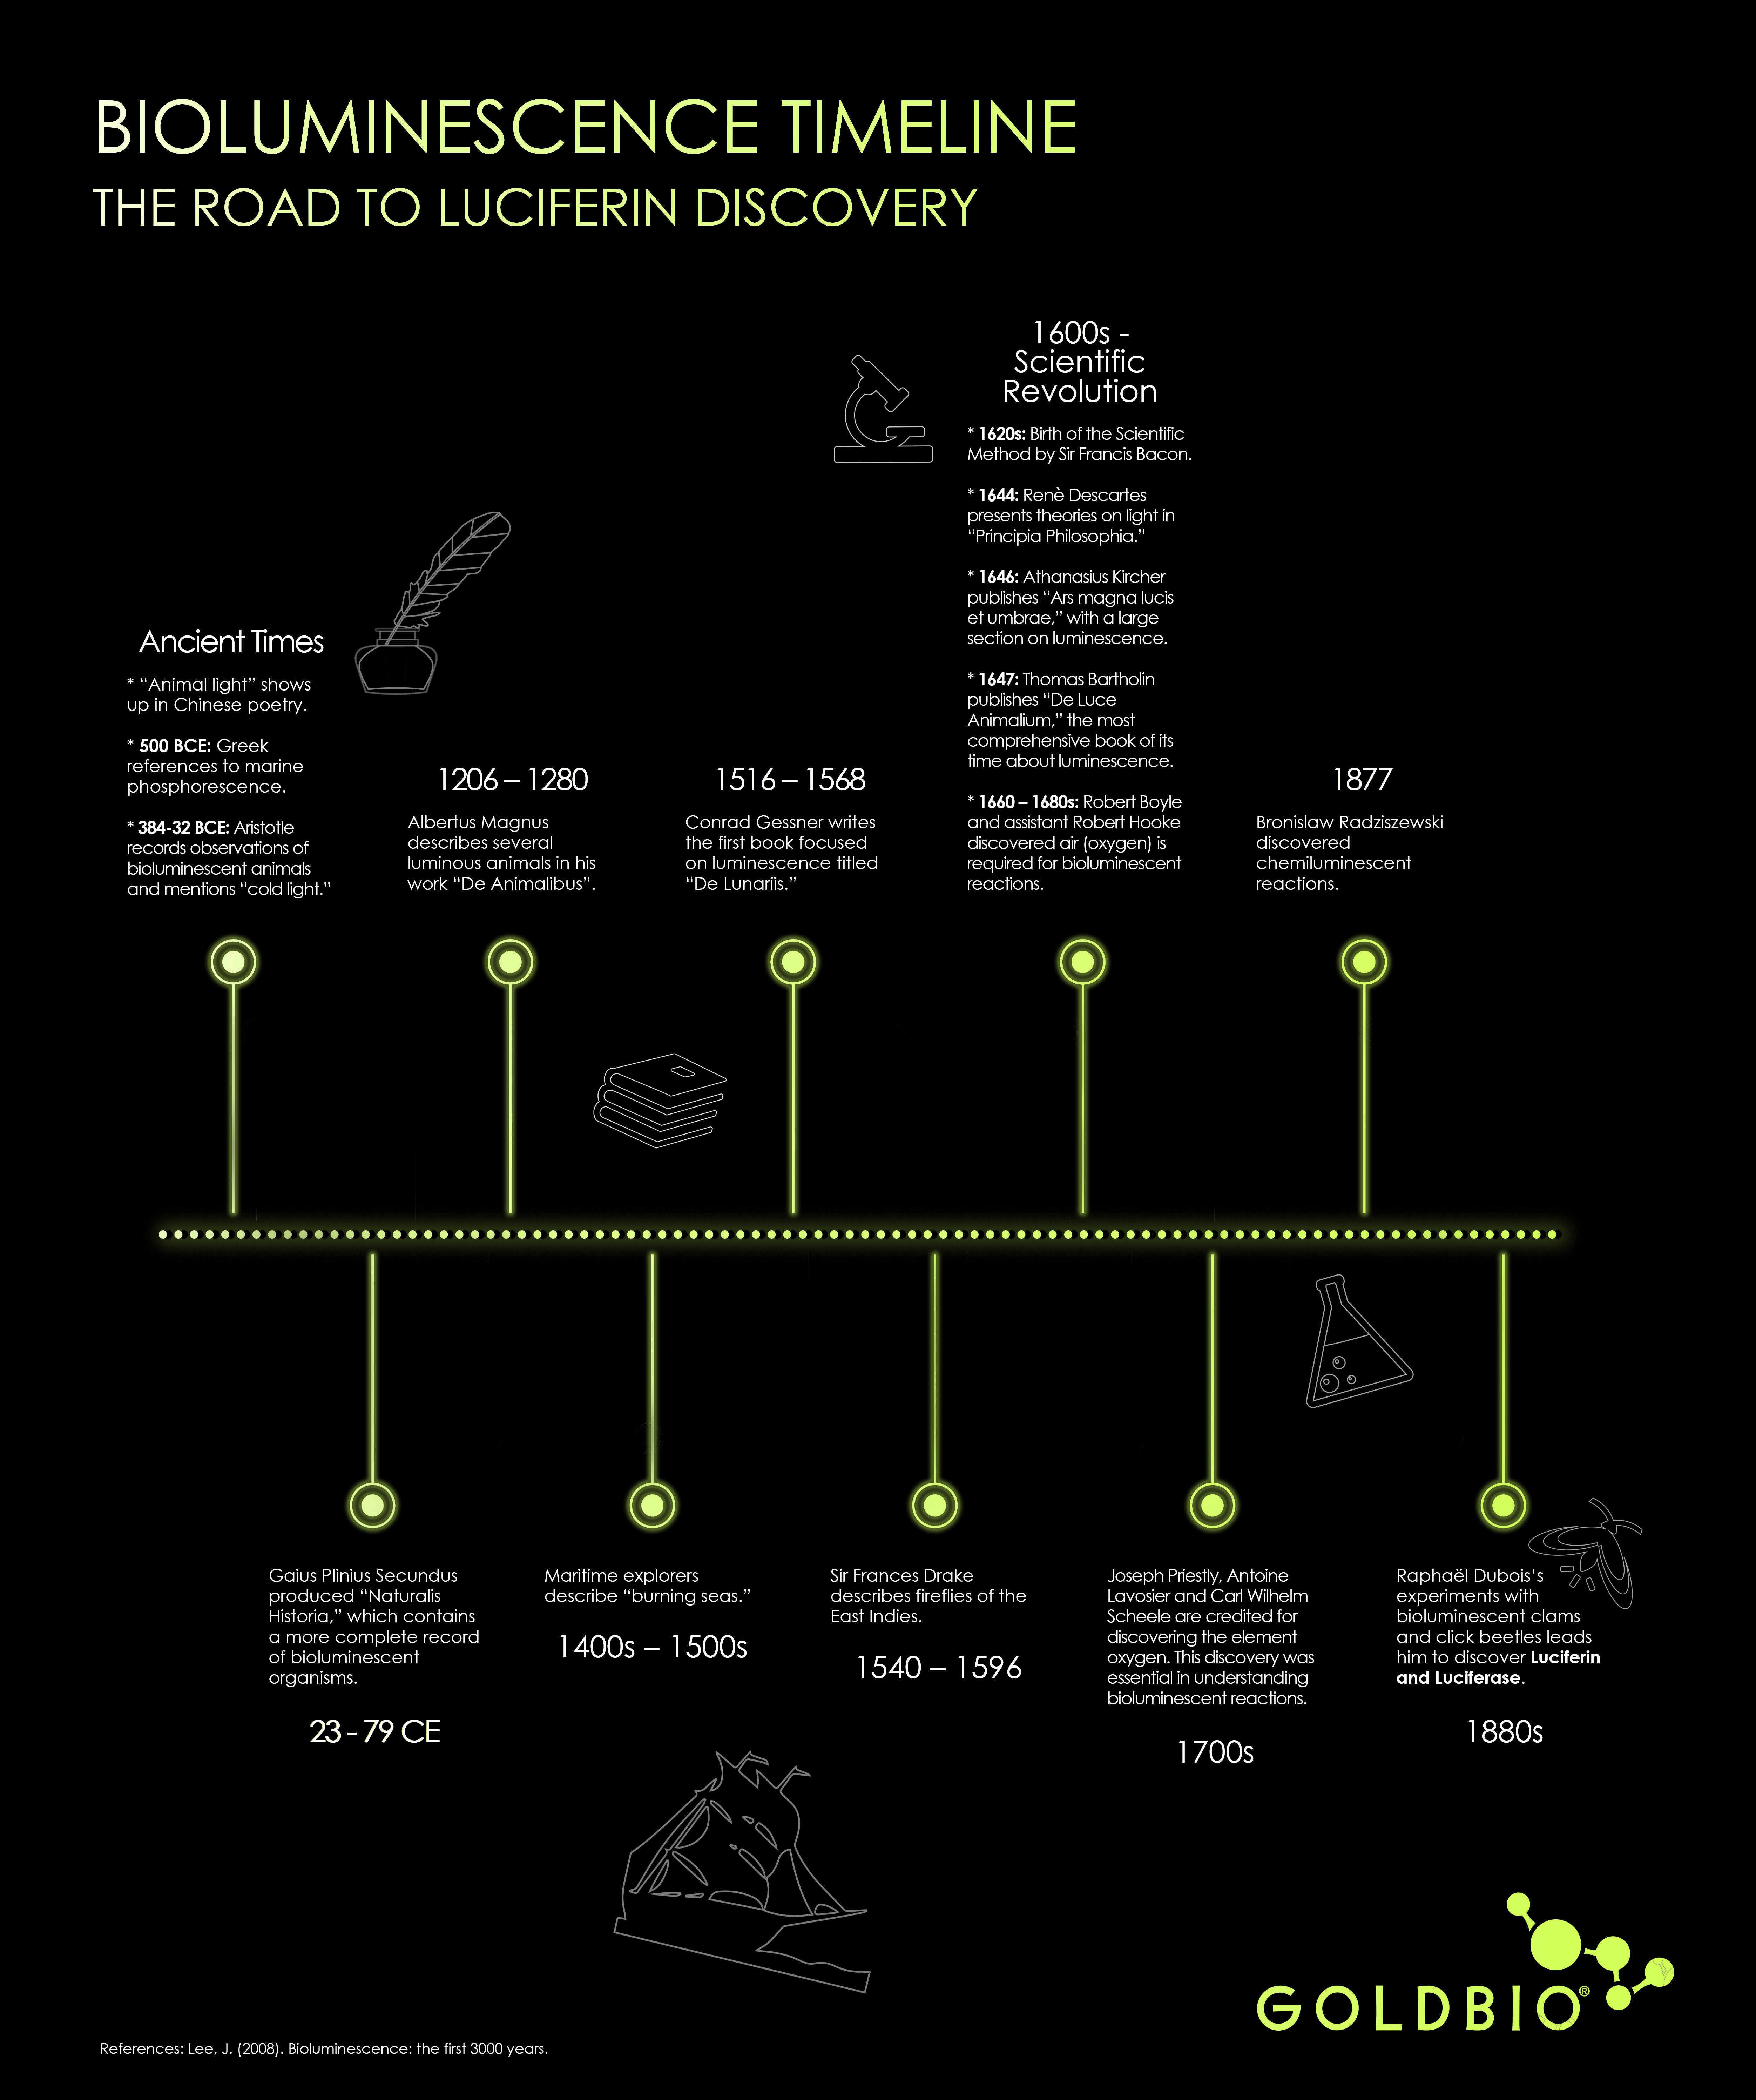 Raphael Dubois discovered the luciferin substrate and luciferase enzyme in the 1880s. This timeline shows bioluminescent history from the ancient times up until the 1880s with Dubois's luciferin - luciferase discovery. Also highlights when the scientific method was discovered by Descartes, maritime recordings of bioluminescent phenomena and more.